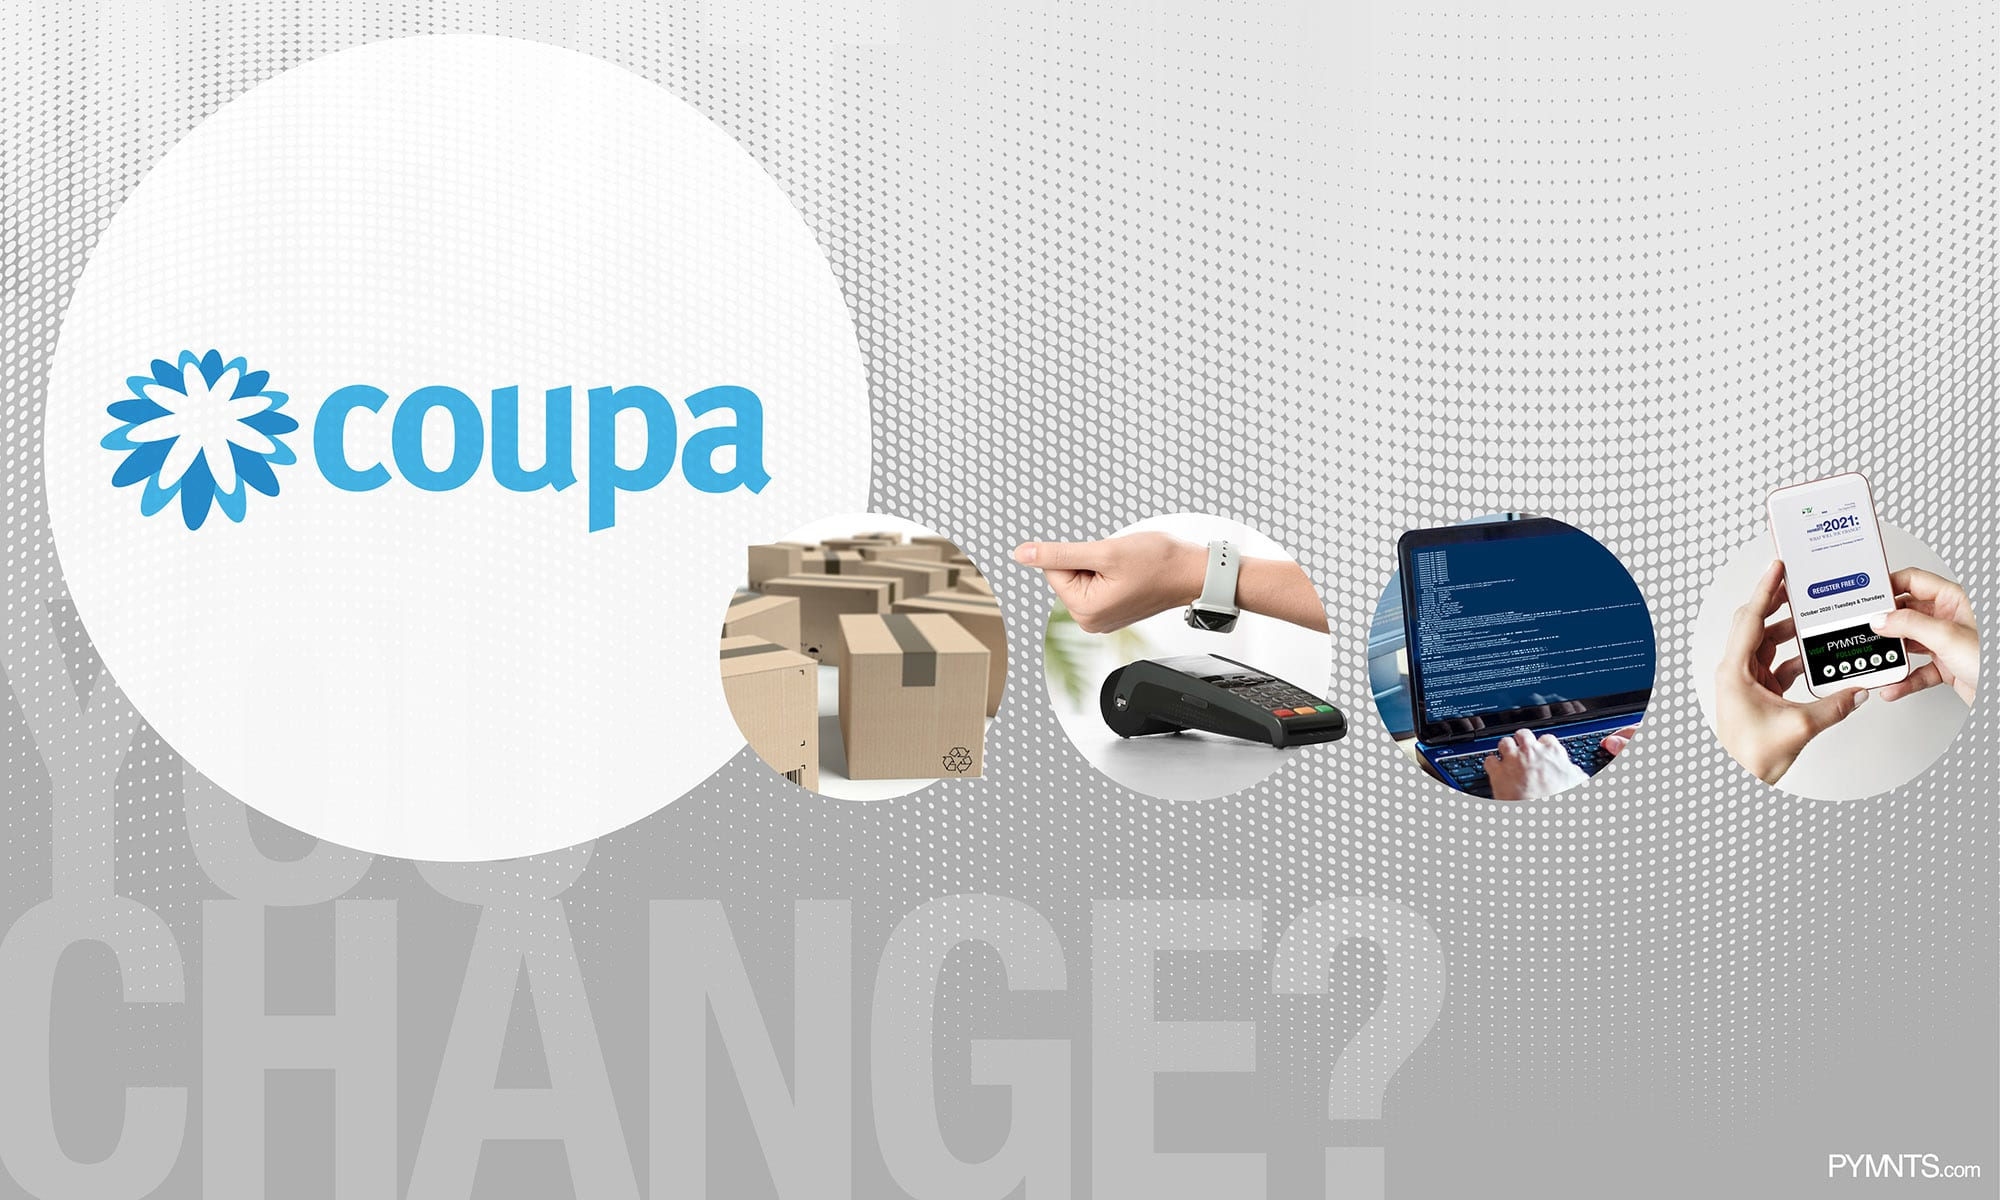 Coupa - What Will You Change